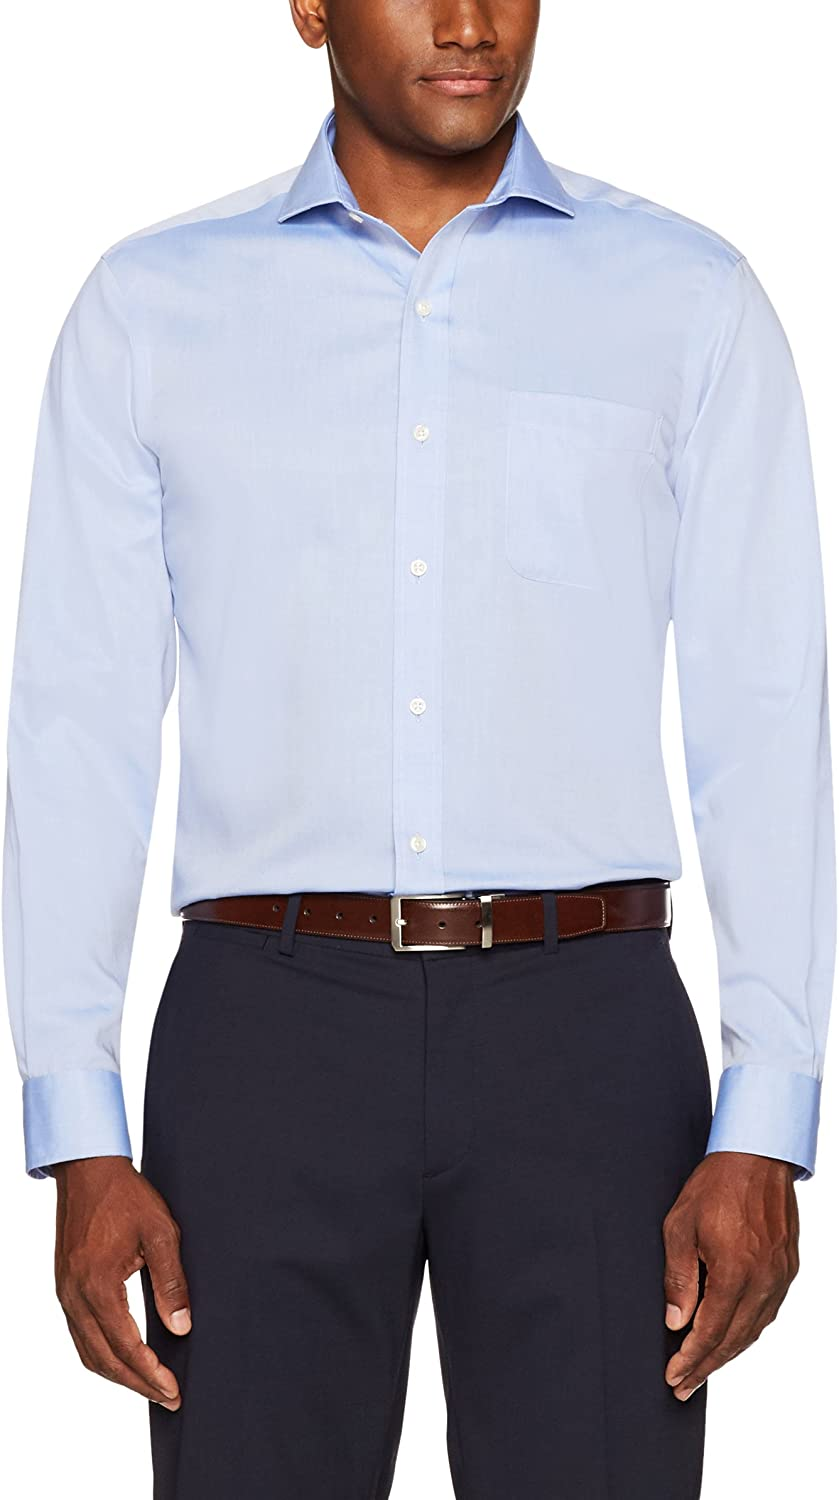 Marque Buttoned Down Chemise Habill/ée Homme